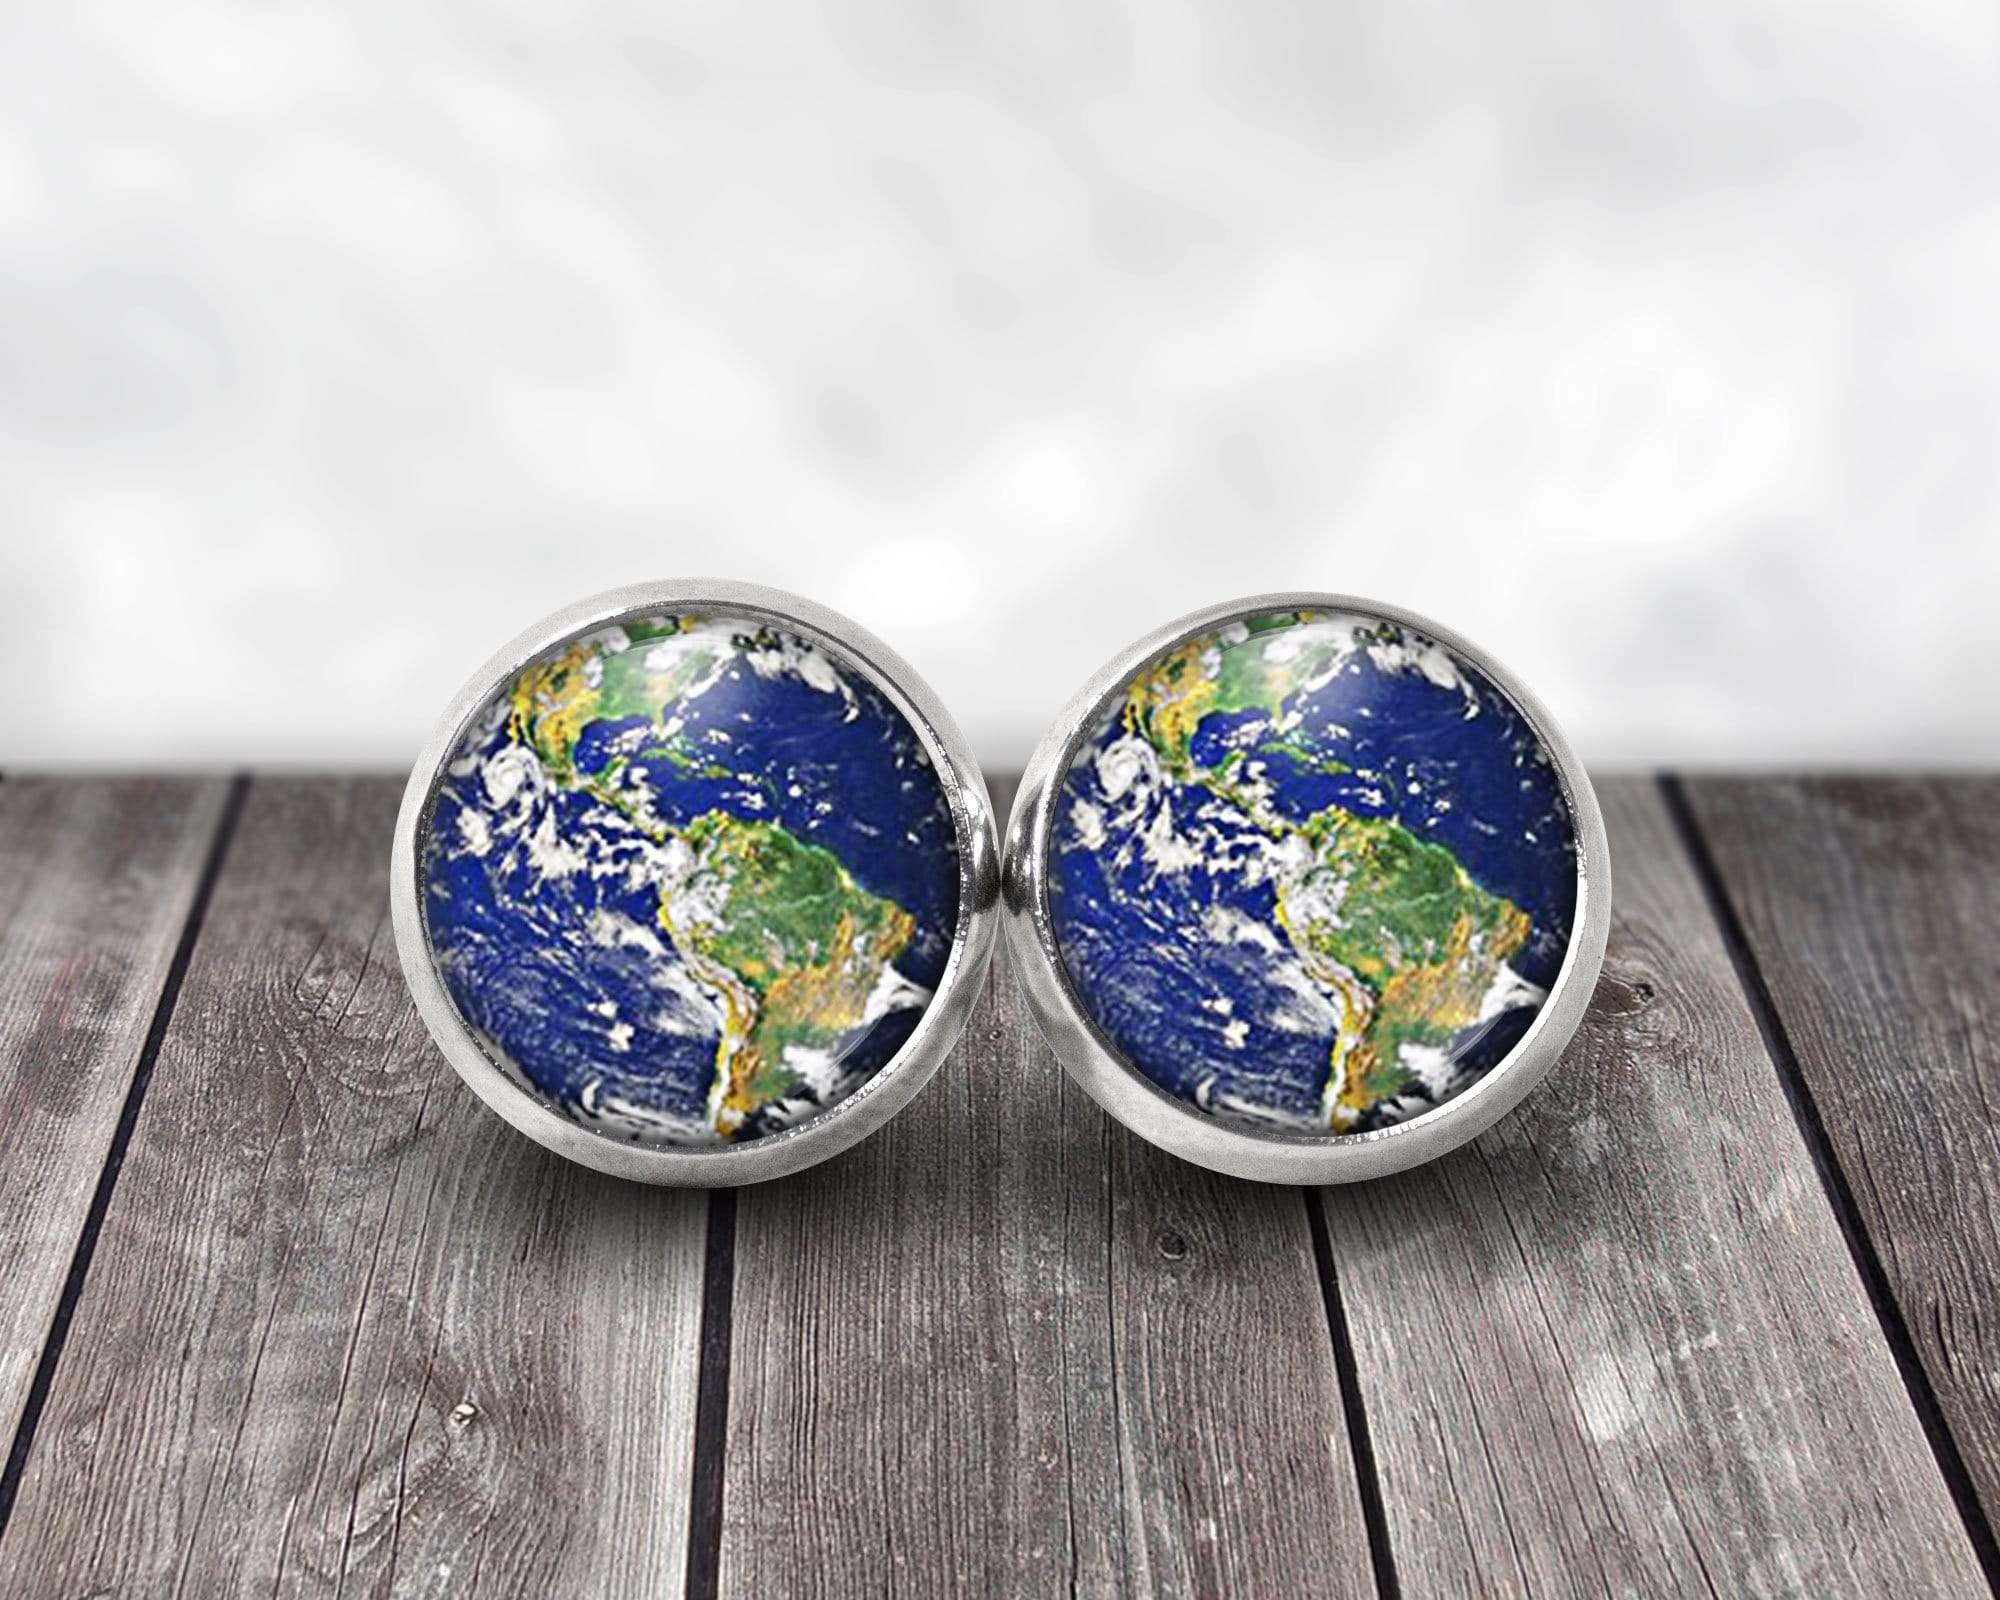 Planet Earth Post Earrings 12mm stainless steel Earrings Buttons For the People